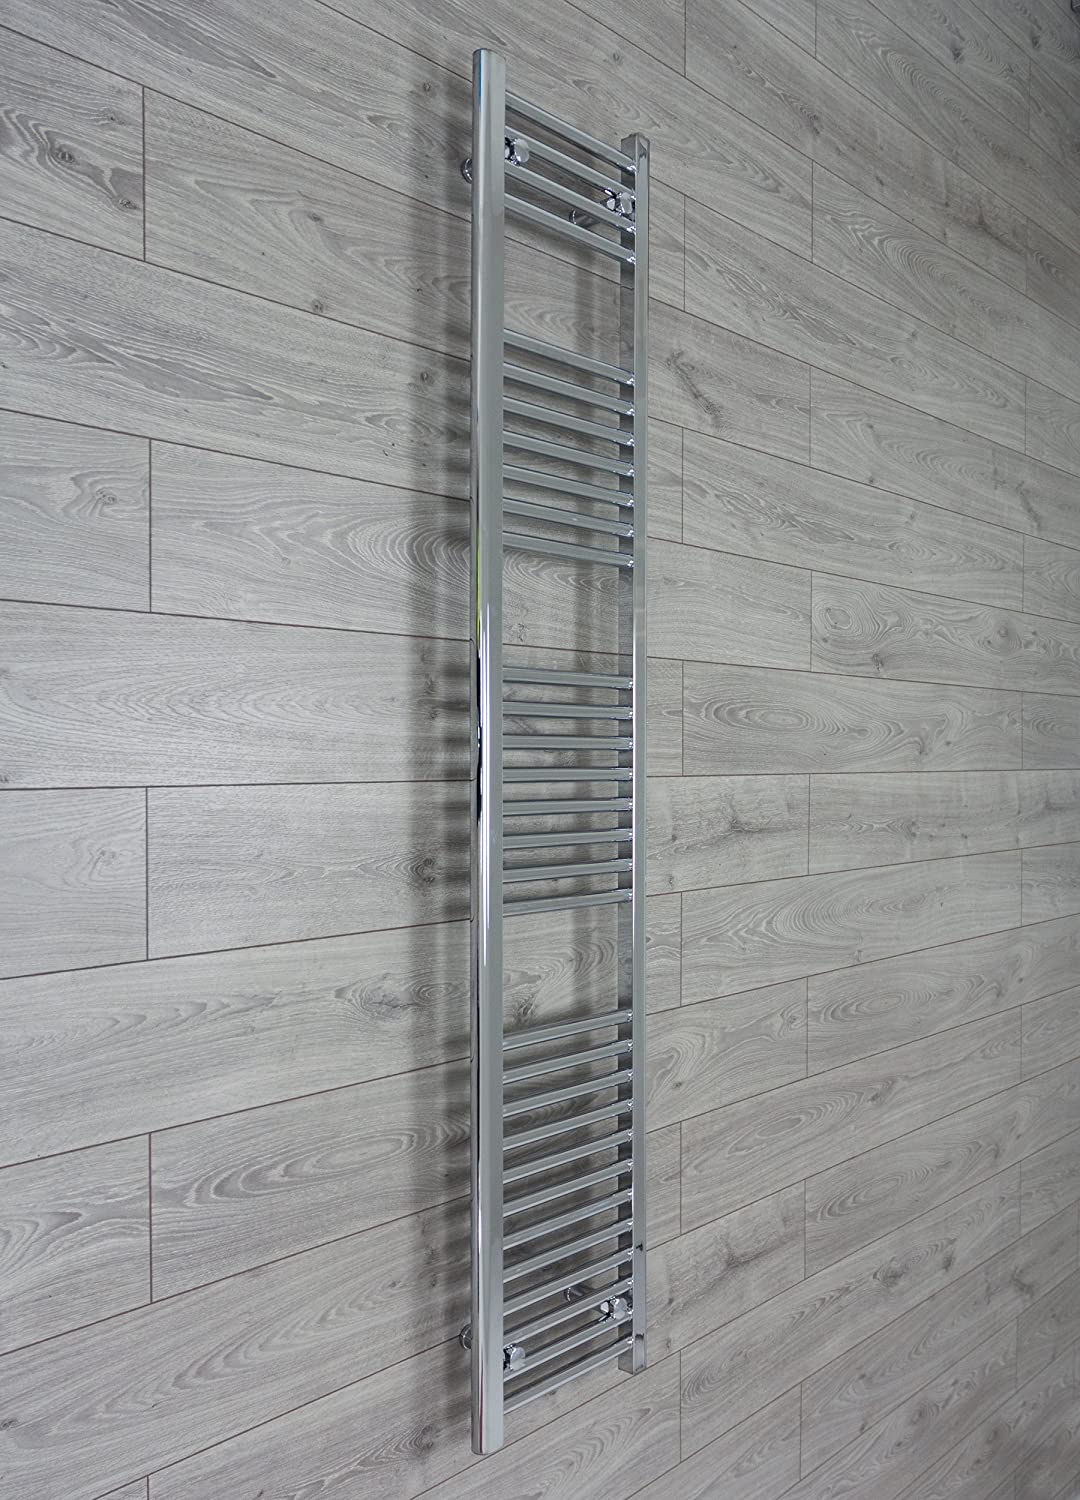 300mm Wide 1800mm High Heated Towel Rail Straight Flat Chrome Bathroom Warmer Bathroom Radiator Rack Central Heating